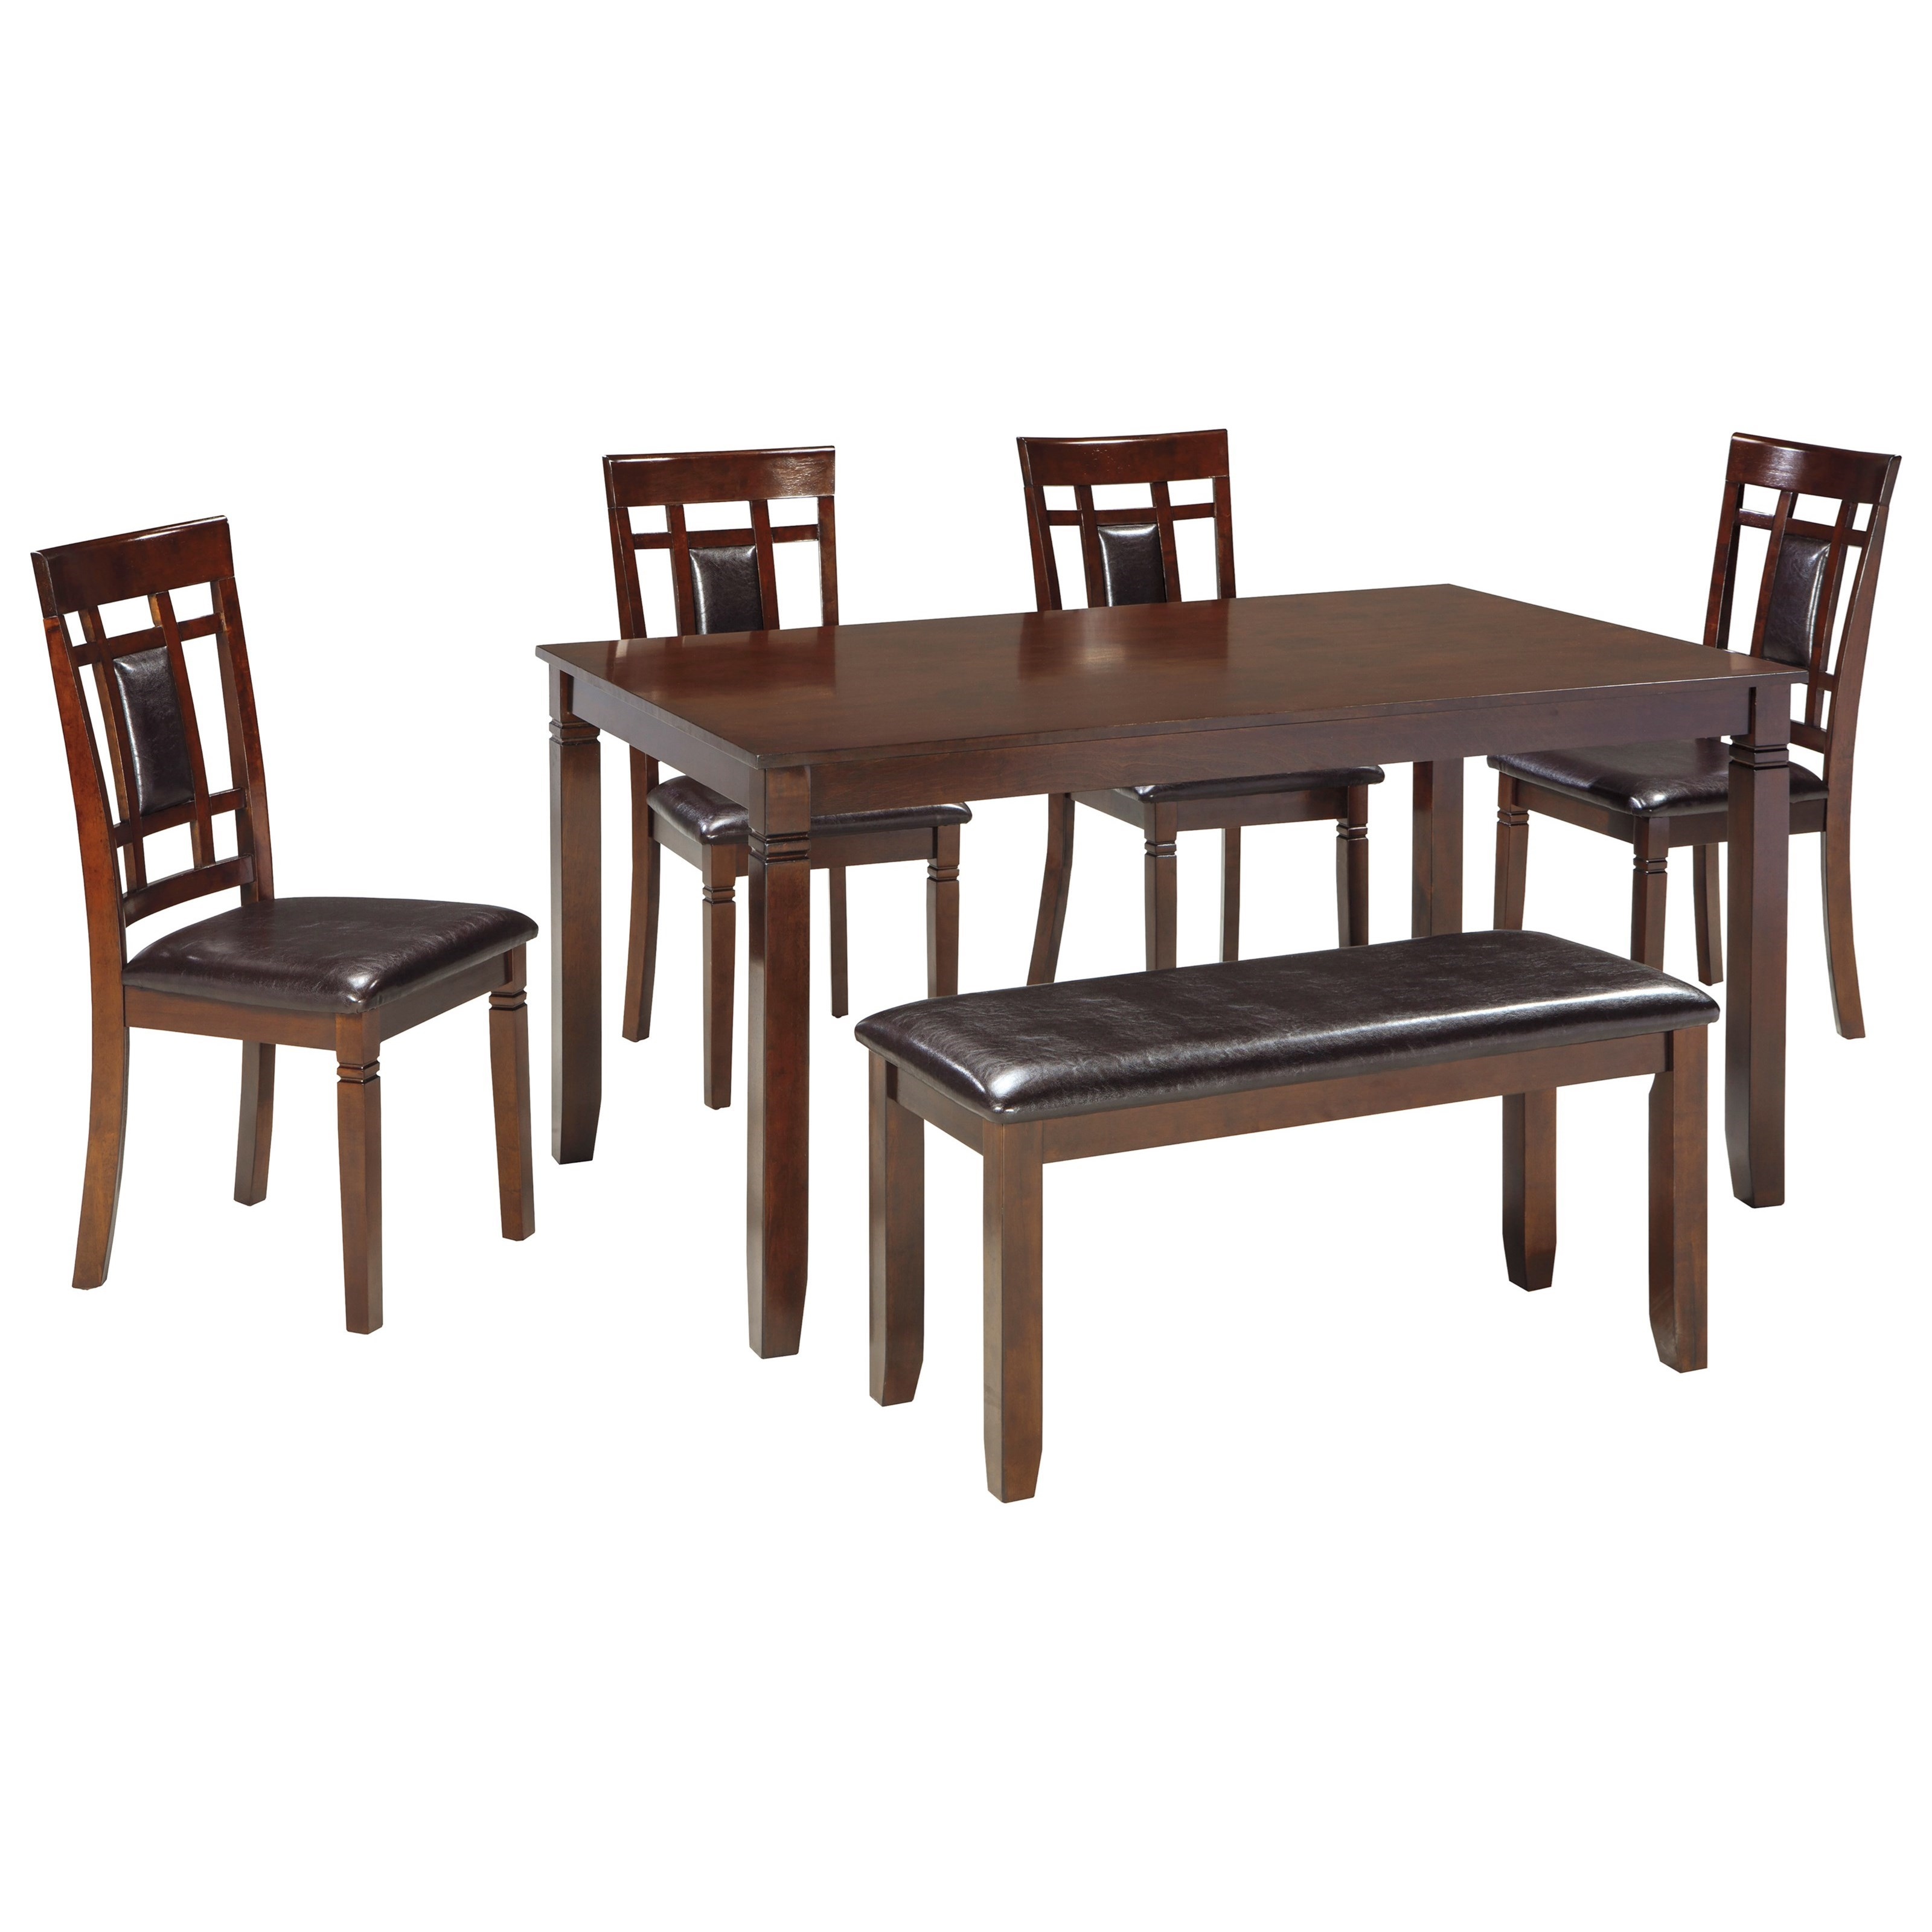 Dining Room With Bench: Contemporary 6-Piece Dining Room Table Set With Bench By